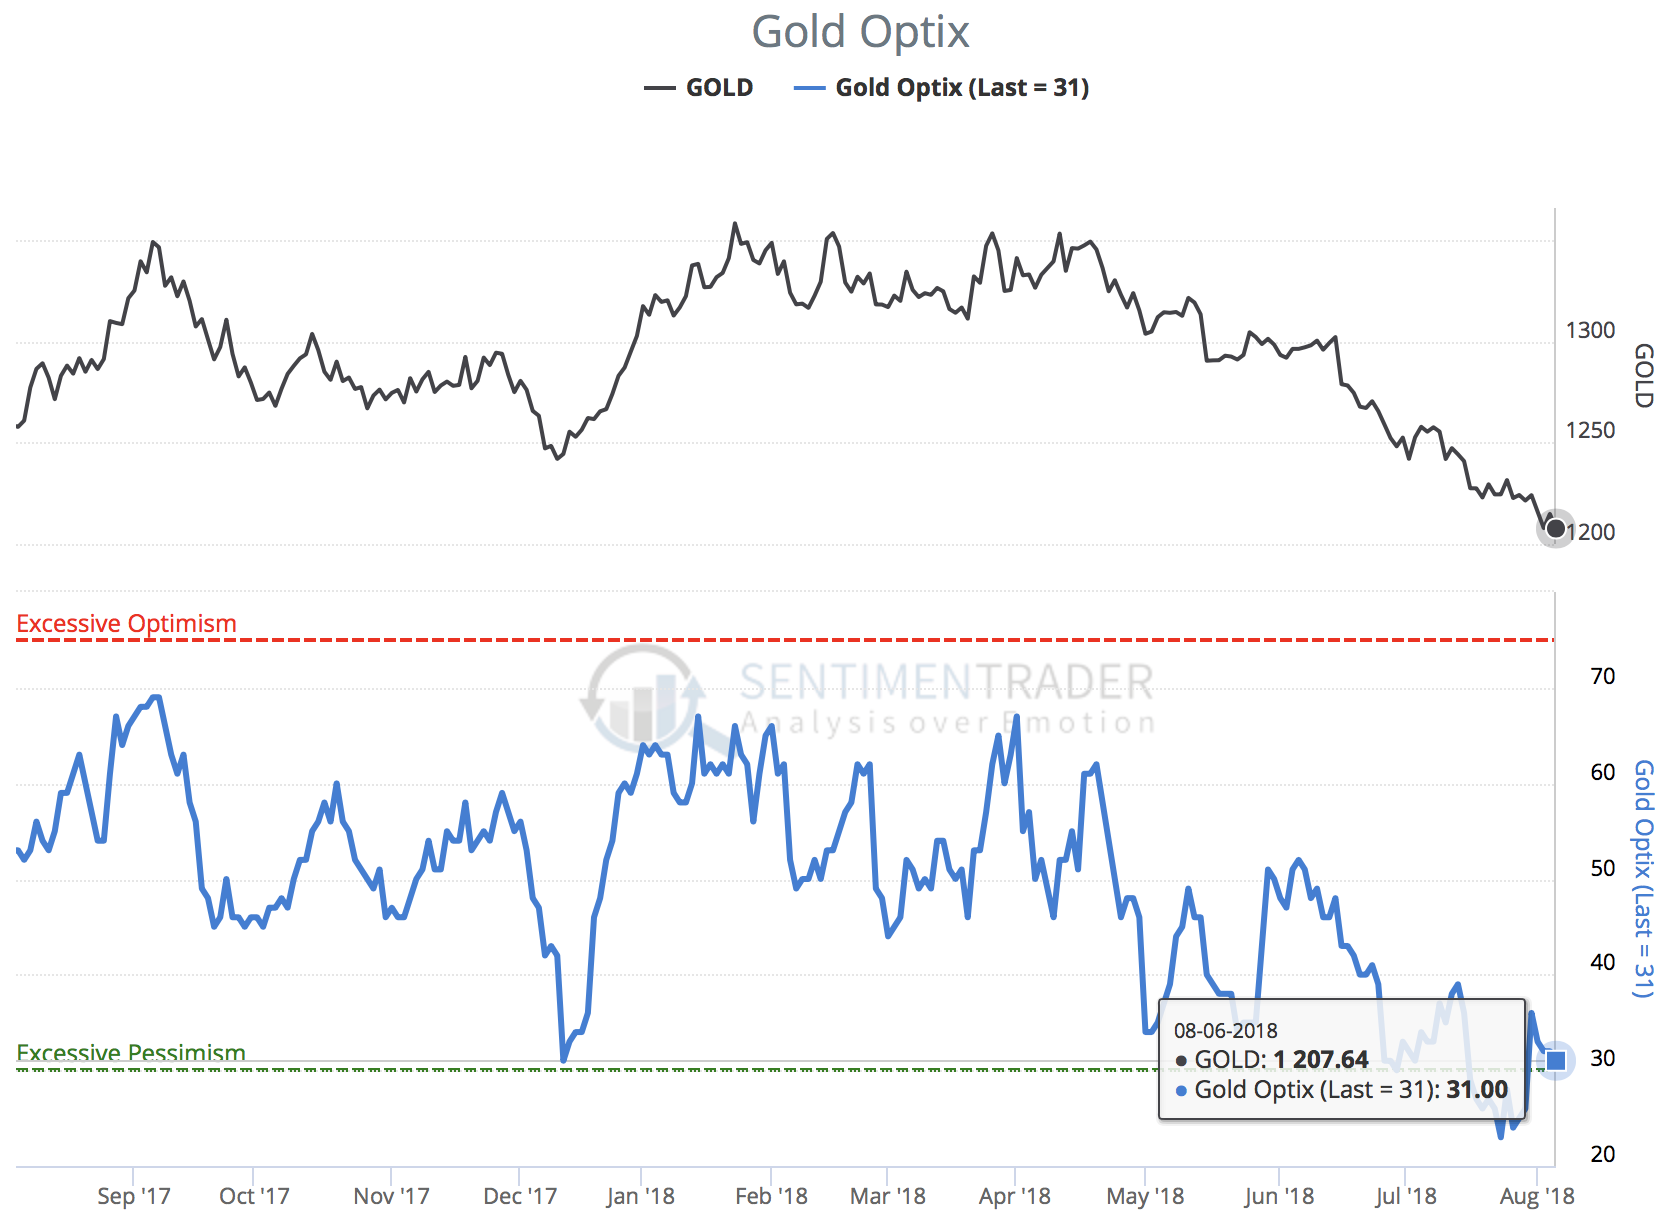 Gold Optix as of August 6th, 2018